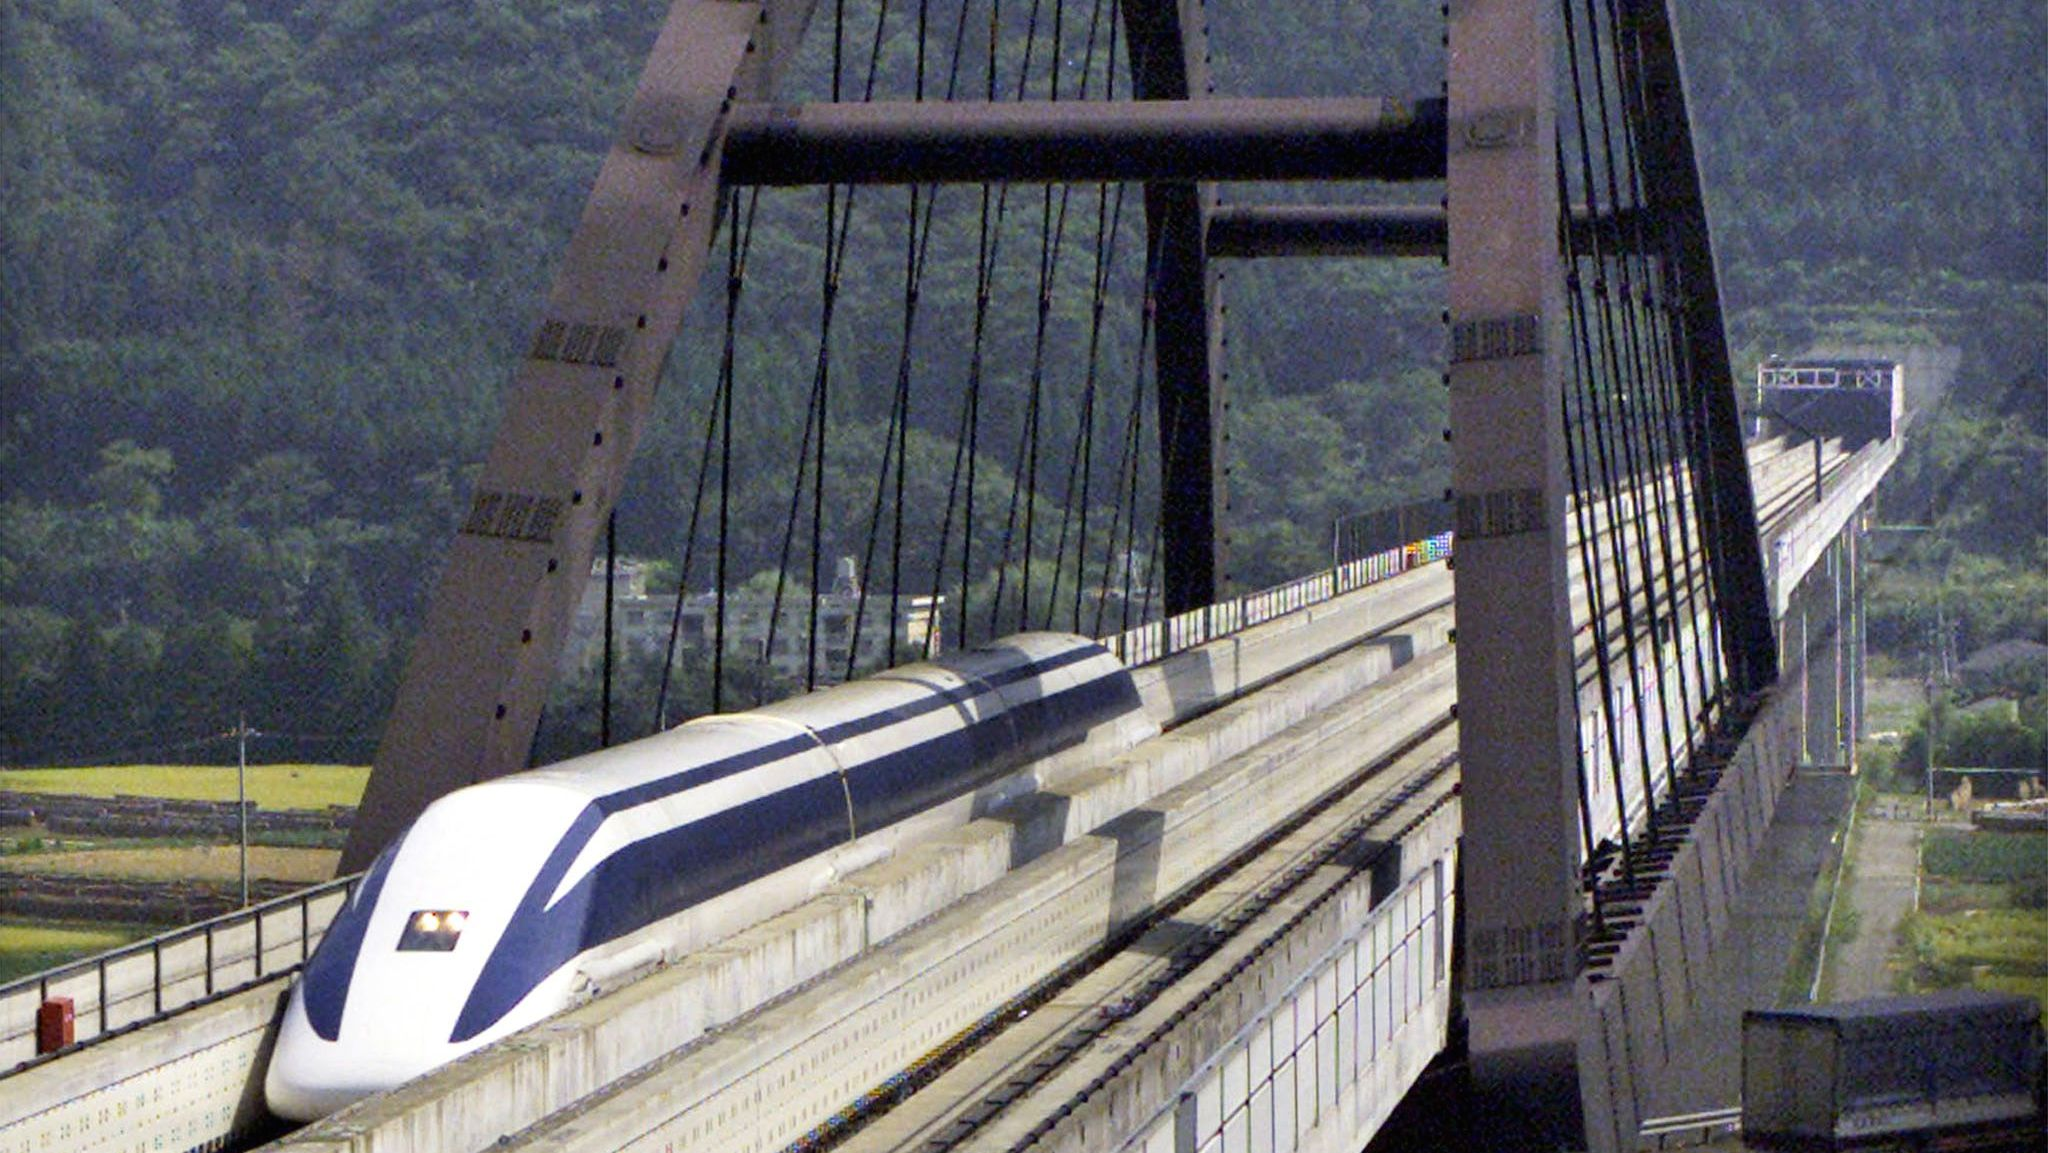 Japan's superconducting linear motor Maglev runs on a railway bridge during a test run on the Maglev Test Line in Yamanashi September 20, 2000. Maglev, the Superconducting Magnetically Levitated Transport System, ran at a speed of 450 kilometres (281 miles) per hour on the test track. The maximum speed for a train transportation system, 552 km/h, was recorded in April last year with a five-car manned vehicle, and received a Guinness World Record Certificate. The ultra-high speed linear motor Maglev is expected to link Tokyo and Osaka in about one hour by running at a speed of 500 km/h.